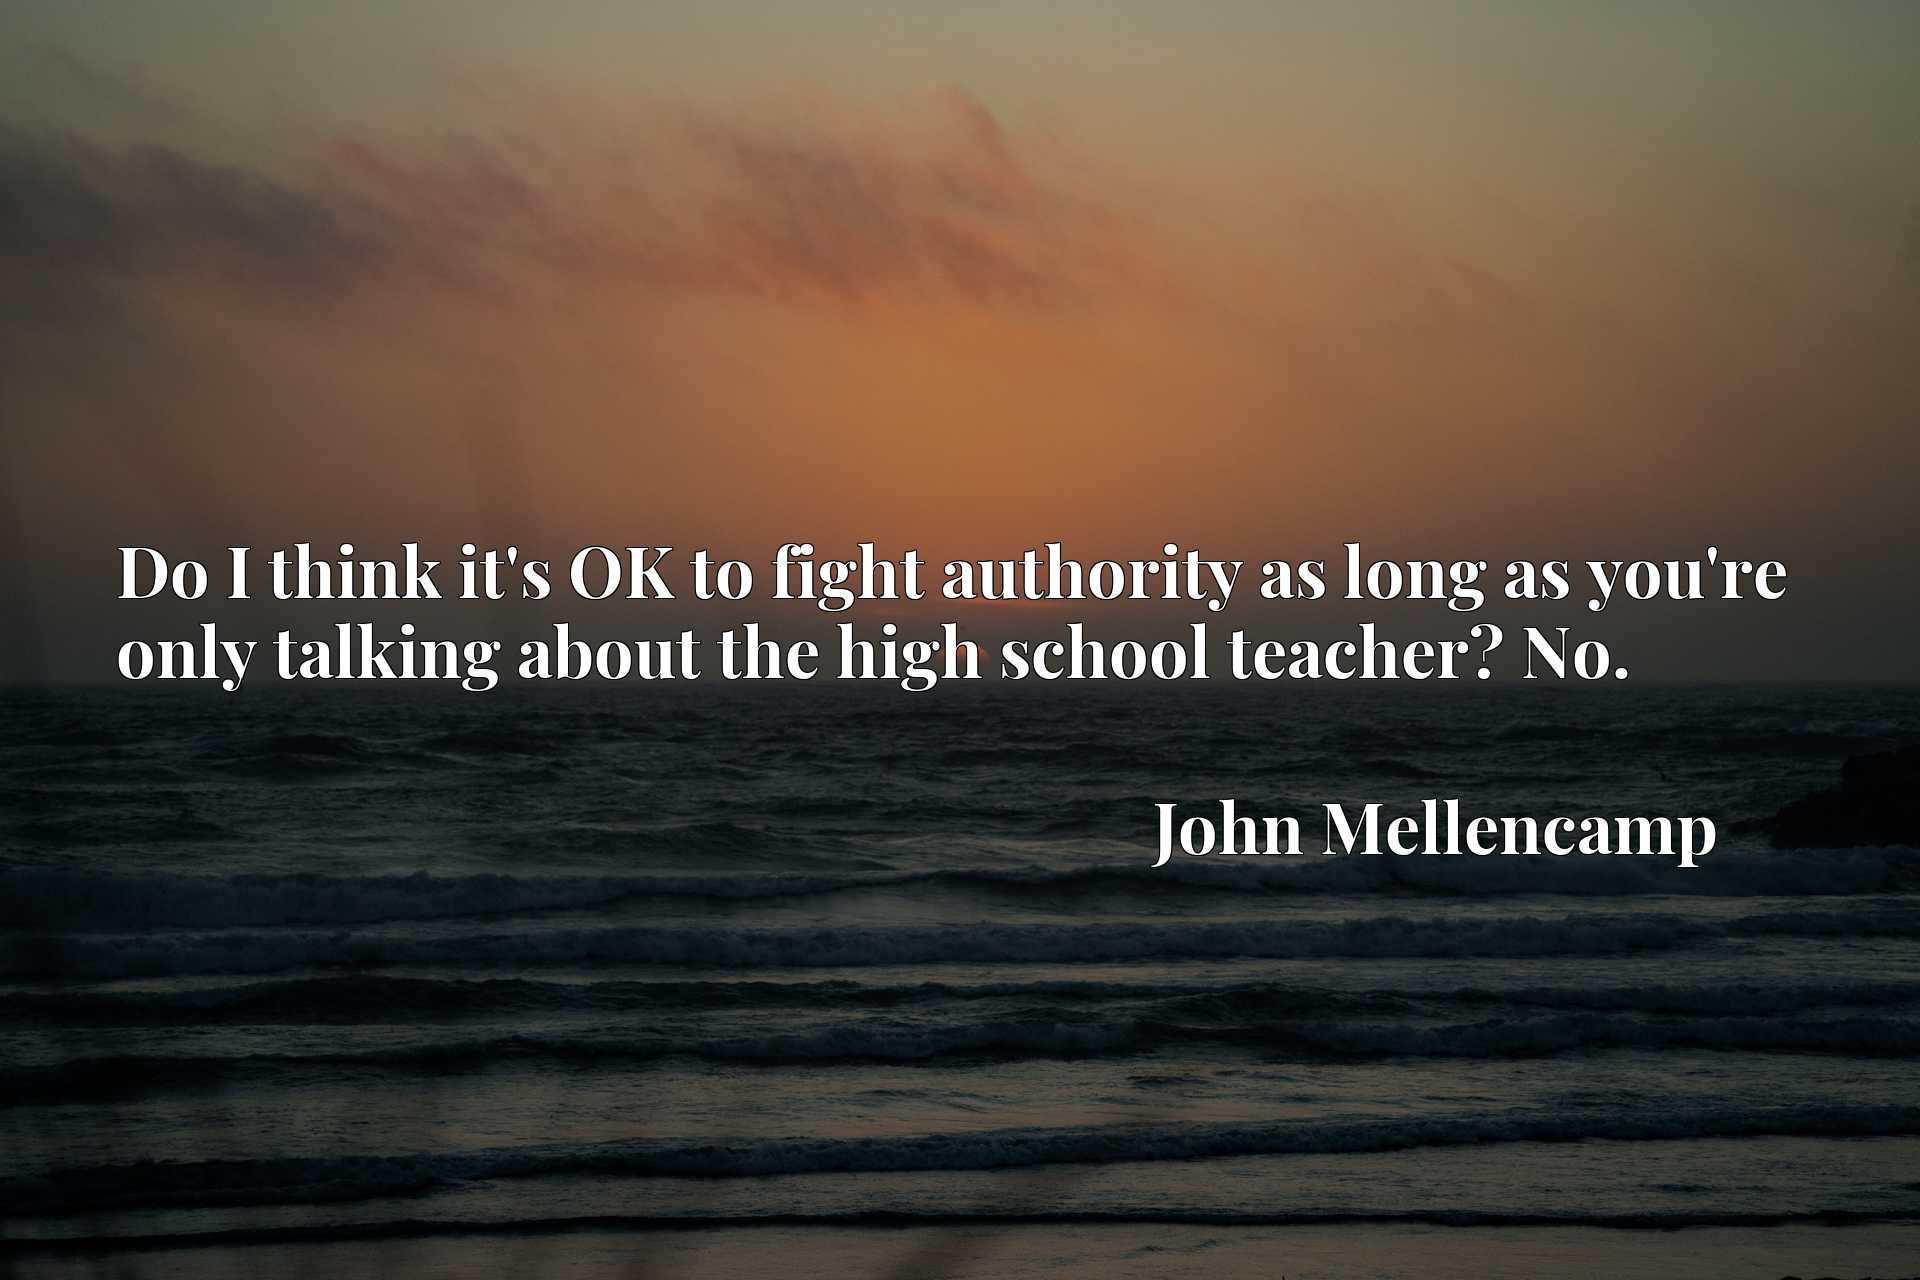 Quote Picture :Do I think it's OK to fight authority as long as you're only talking about the high school teacher? No.